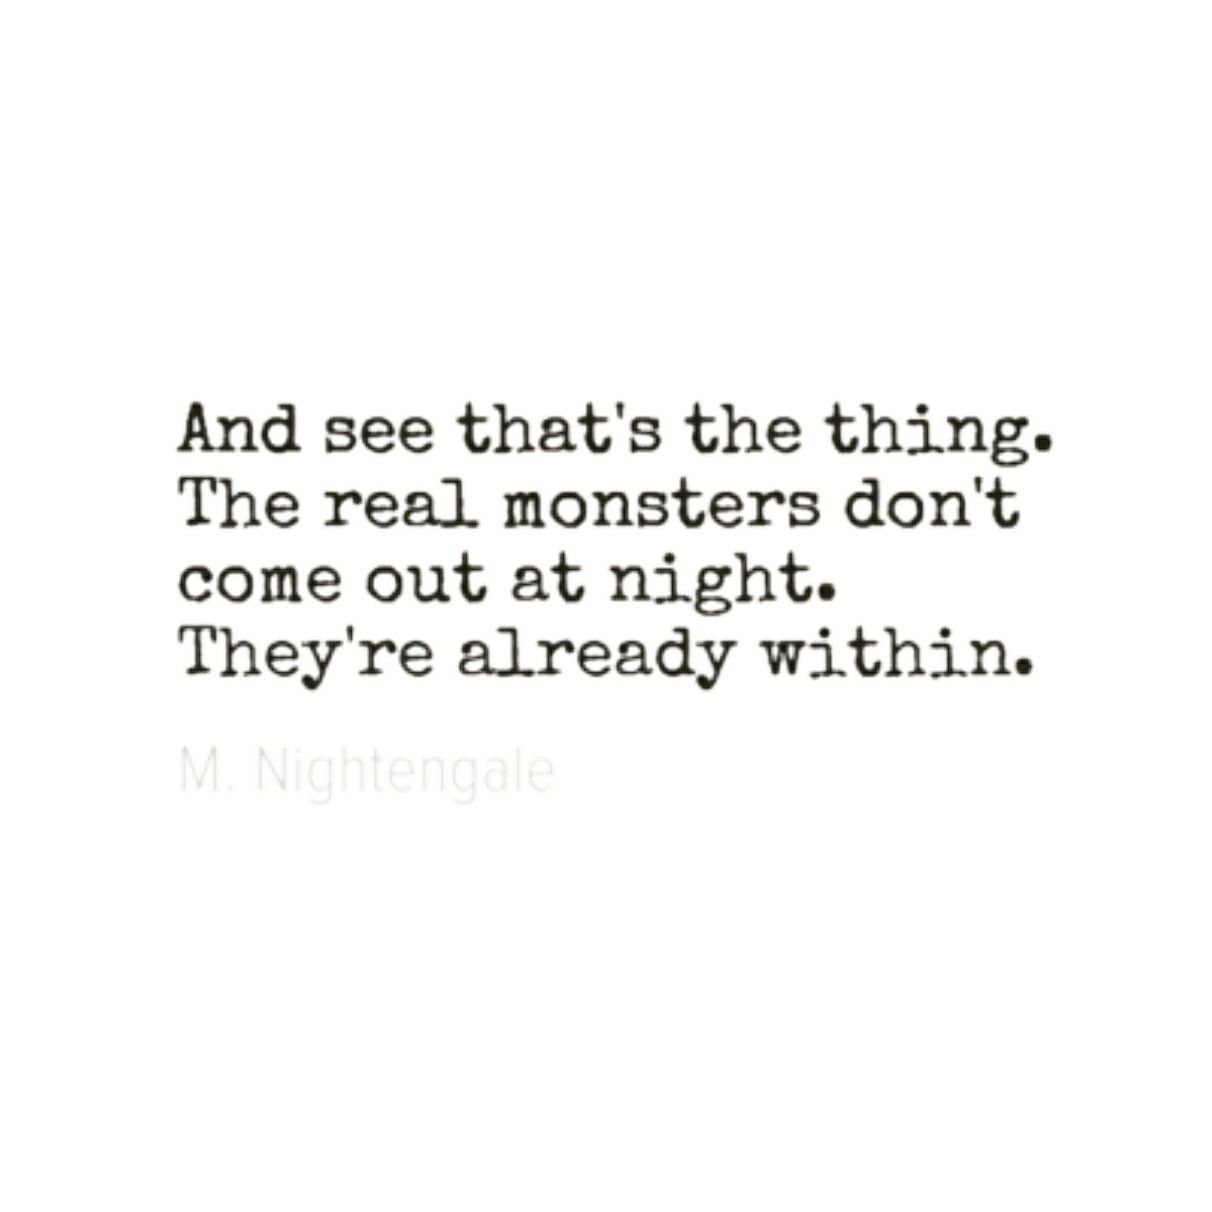 Quotes Within Quotes Monsters Withinquotes Night  Quotes  Pinterest